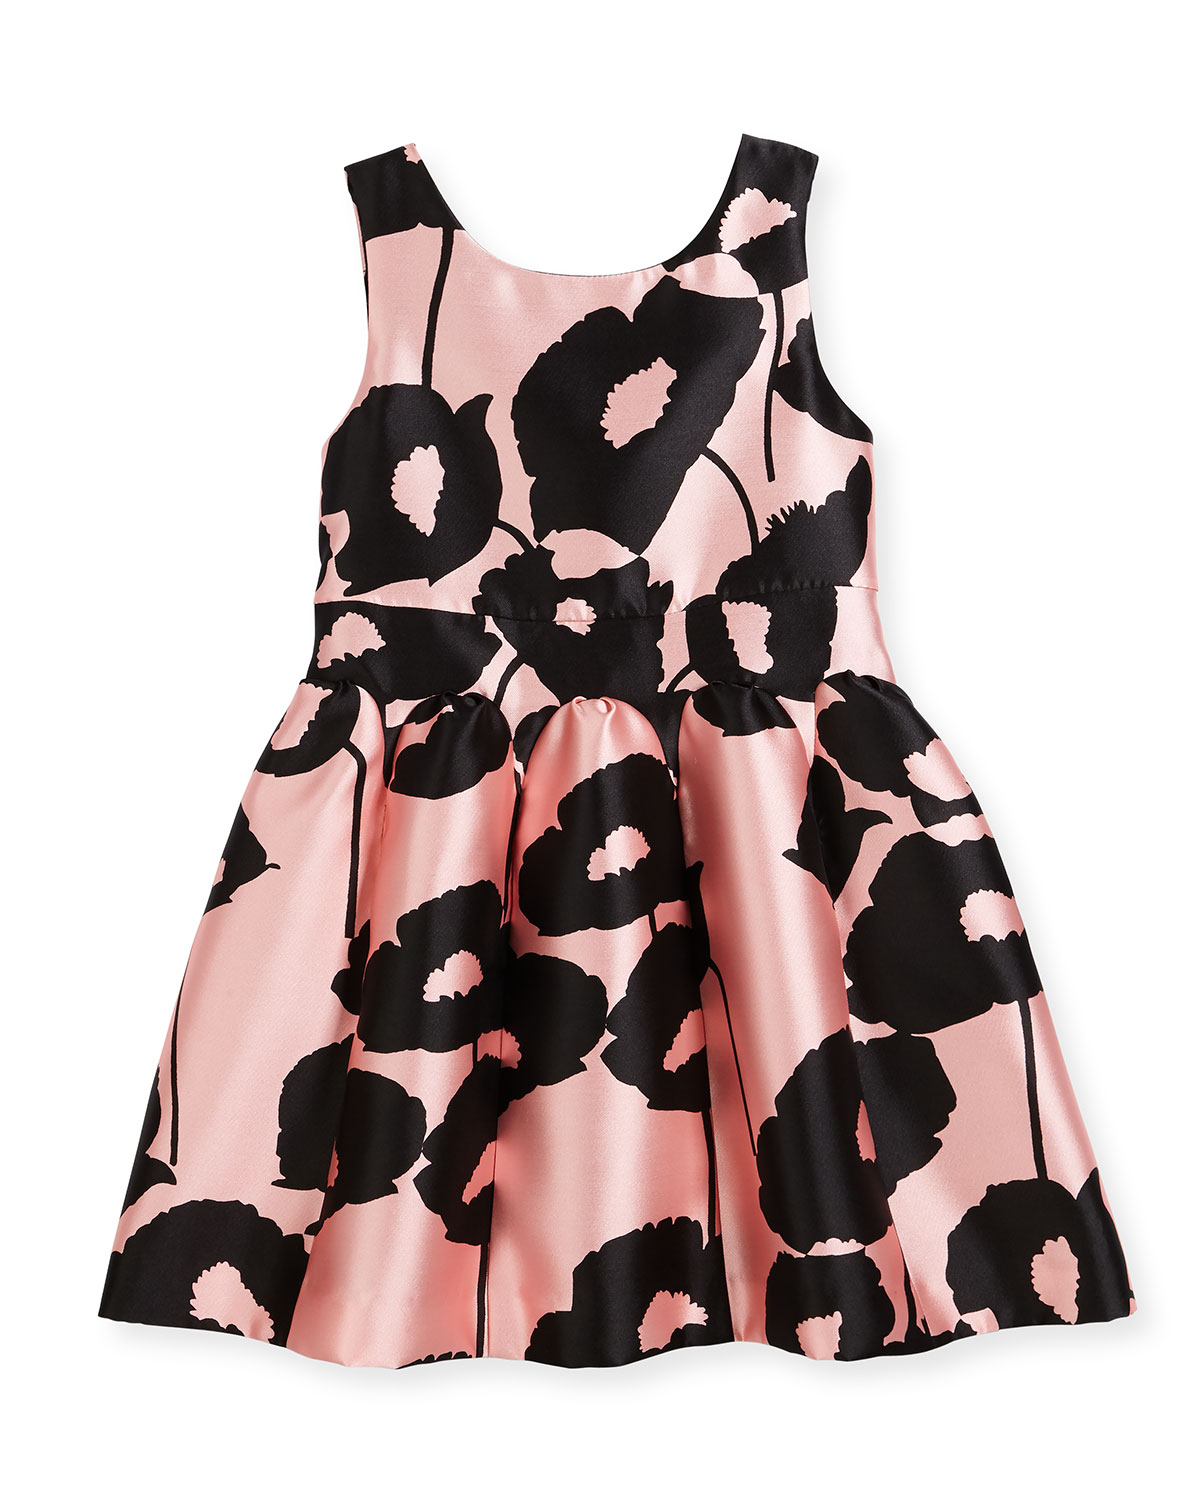 Poppy Floral-Print Party Dress, Size 8-16